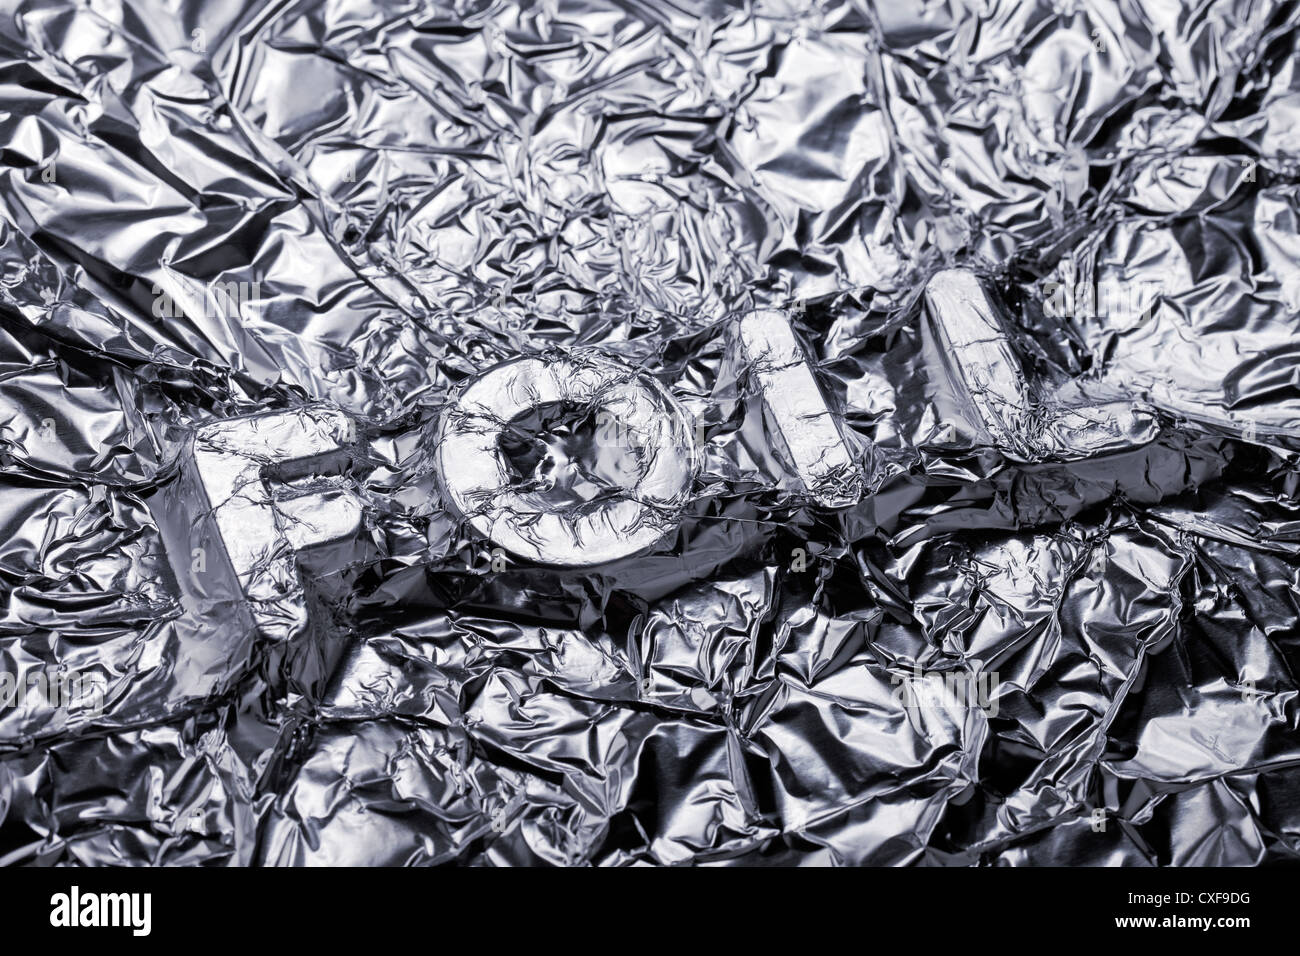 Word Foil covered with aluminium foil. - Stock Image